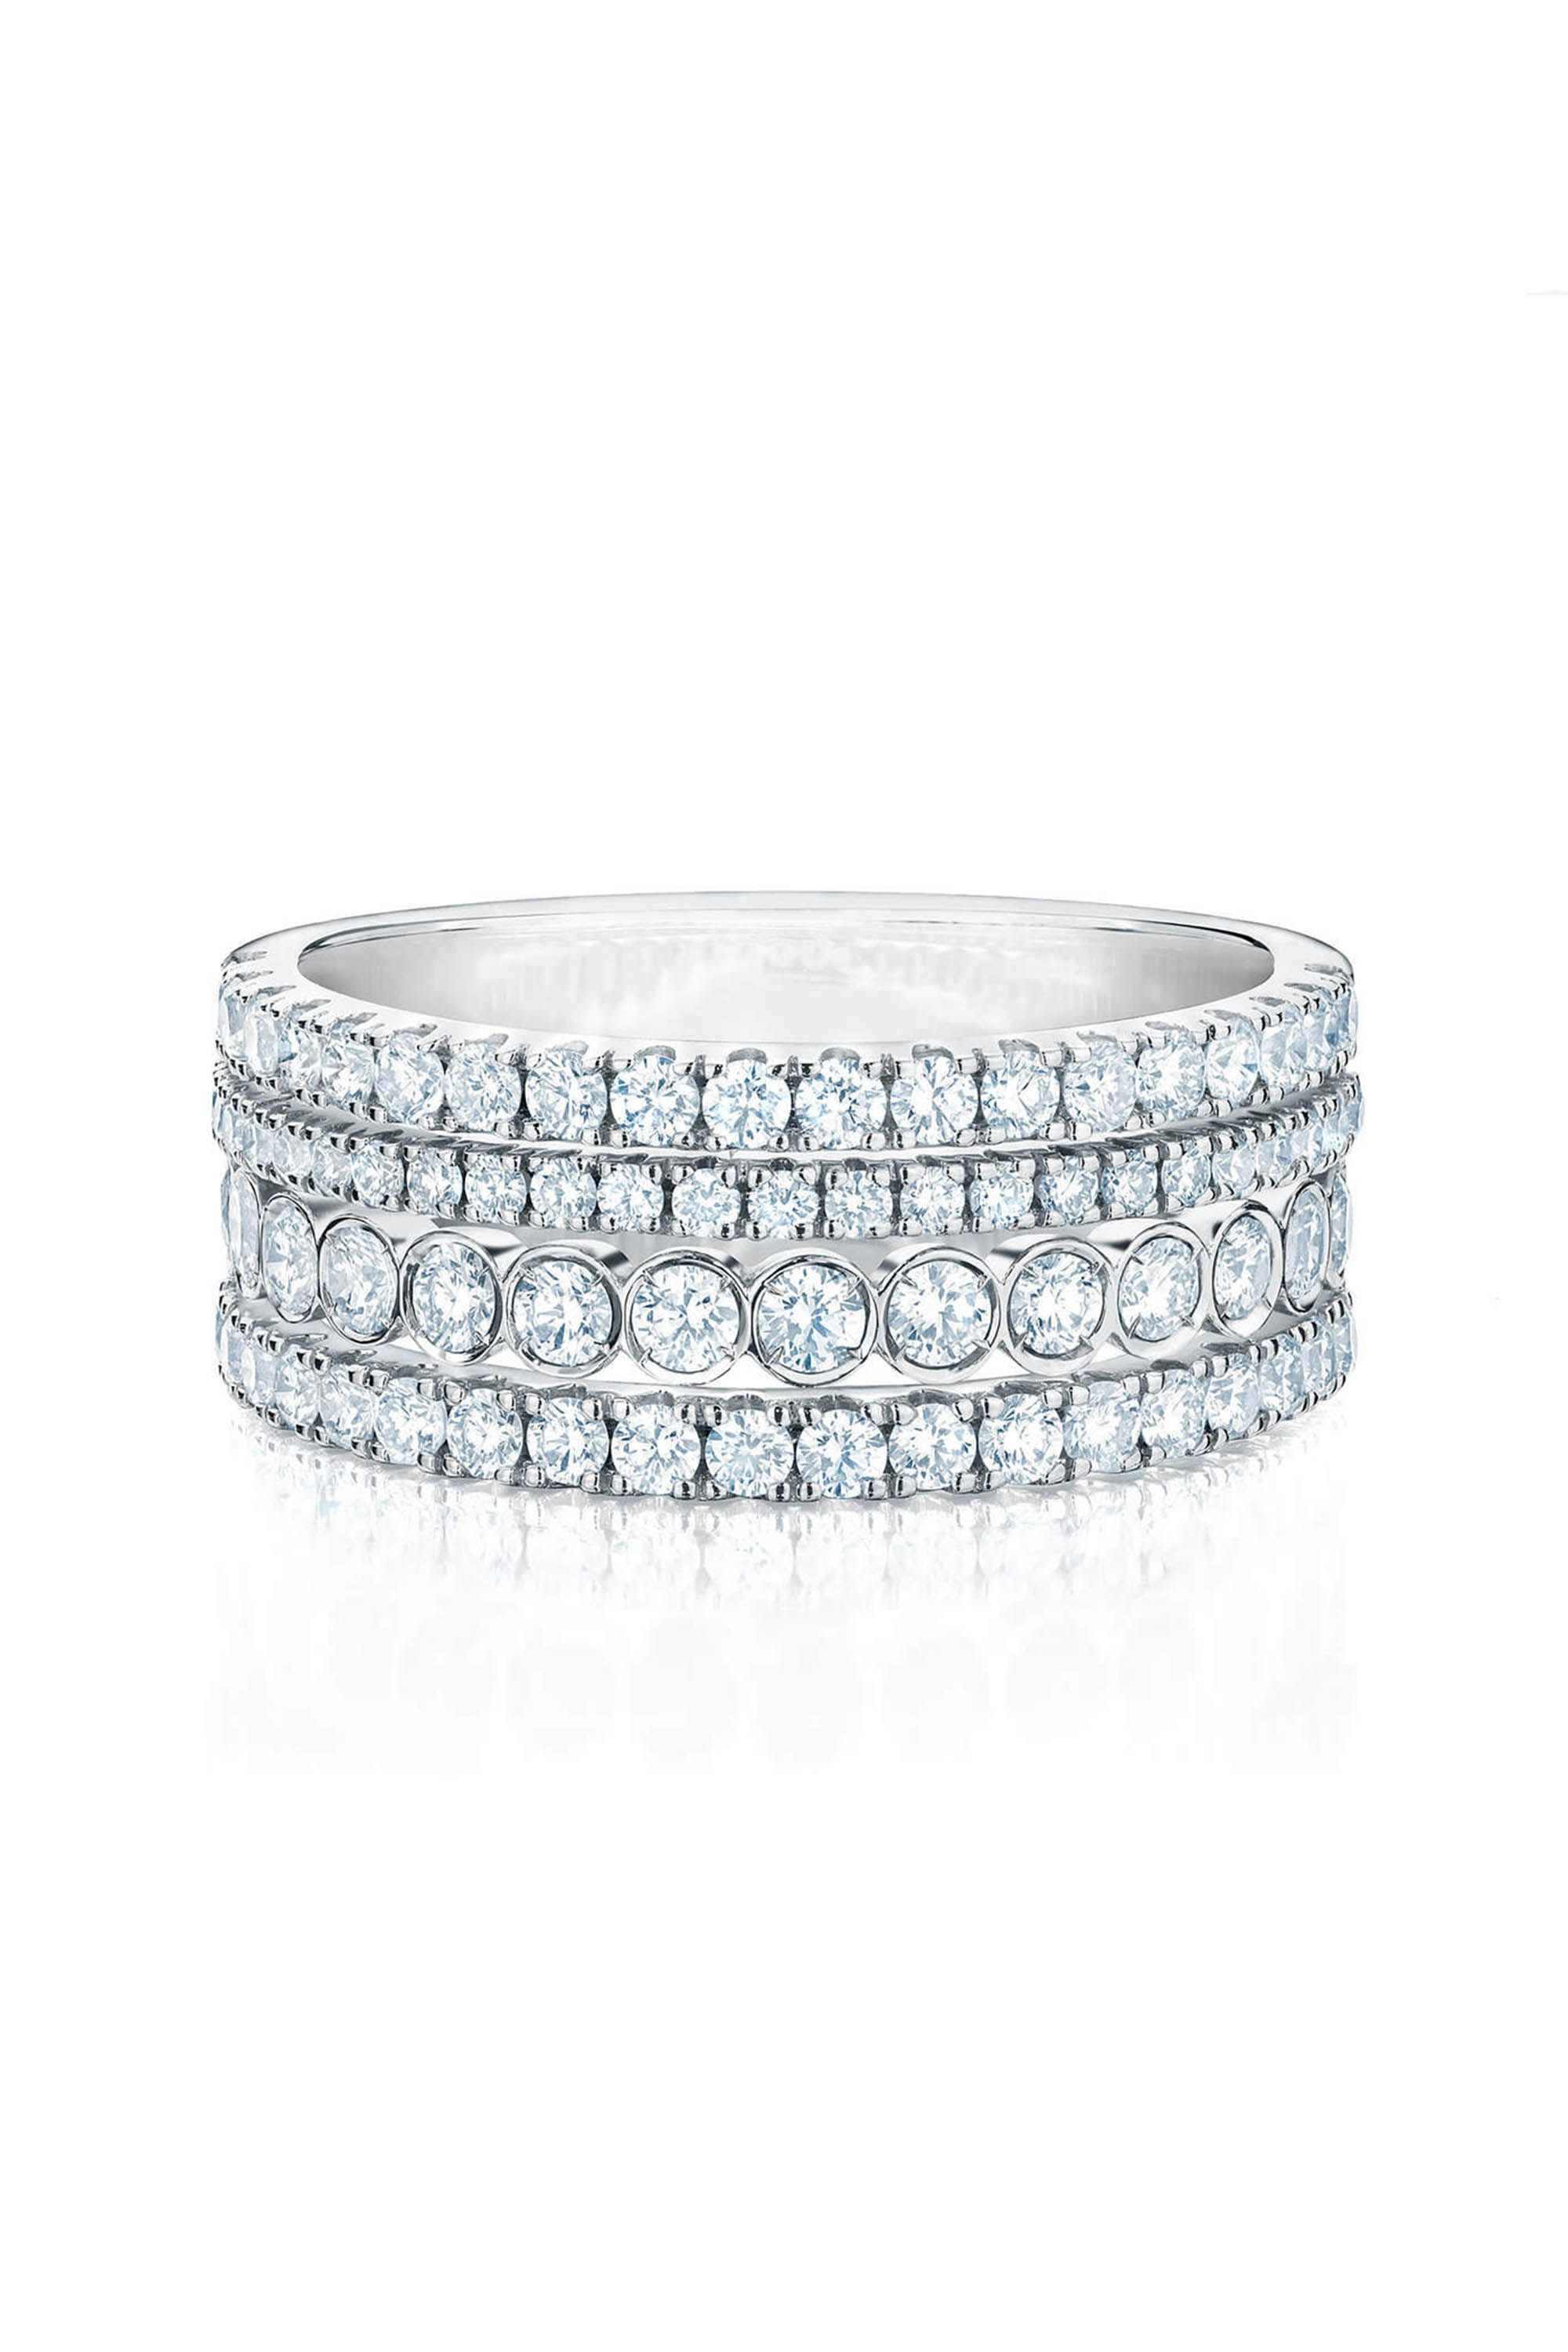 abd3e6f9c Our guide to the best engagement rings - designer and classic engagement  rings